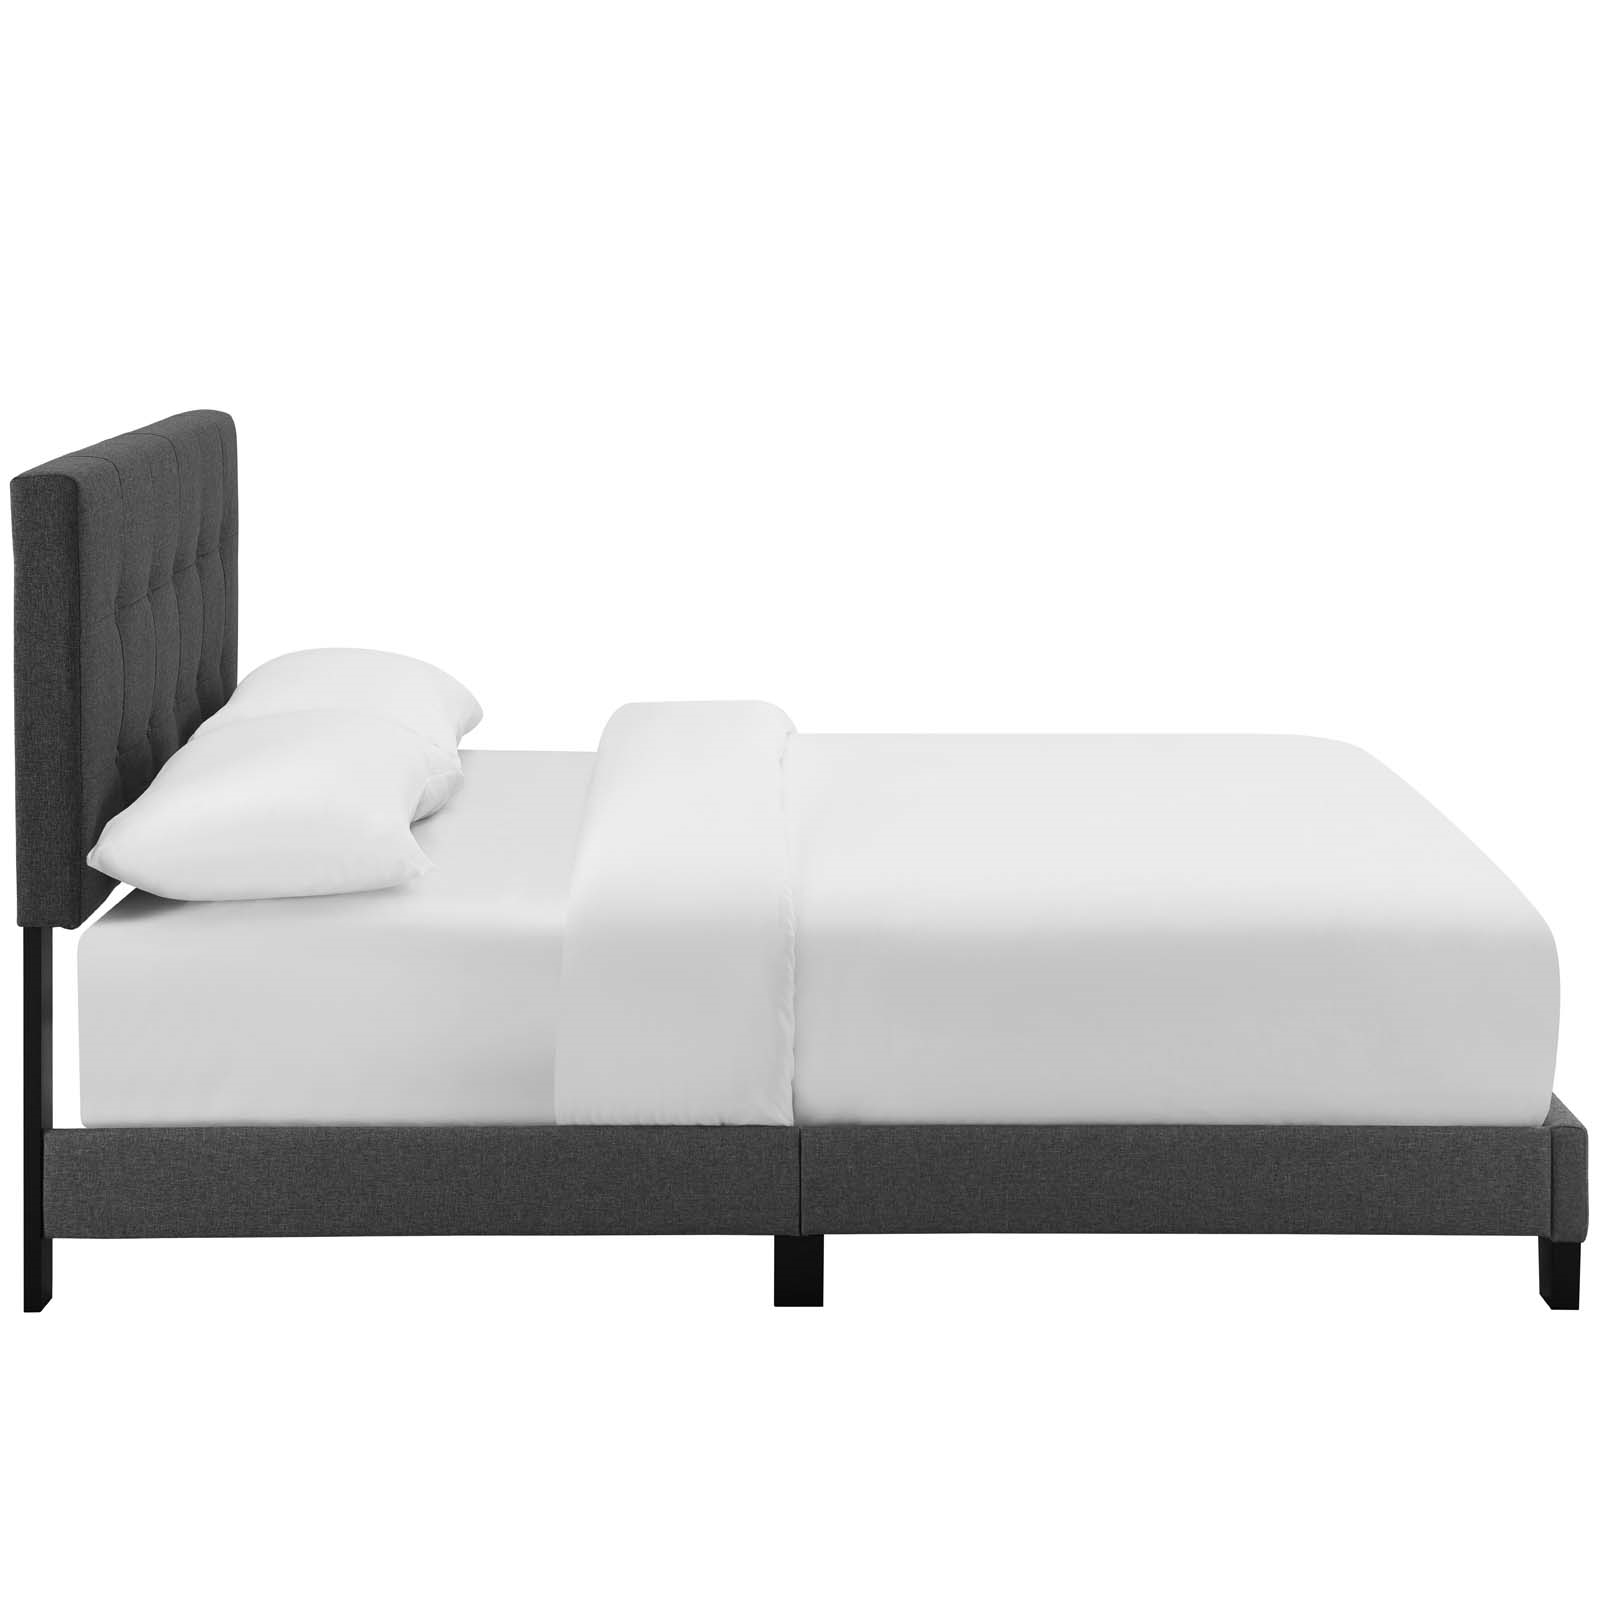 Amira Queen Upholstered Fabric Bed in Gray